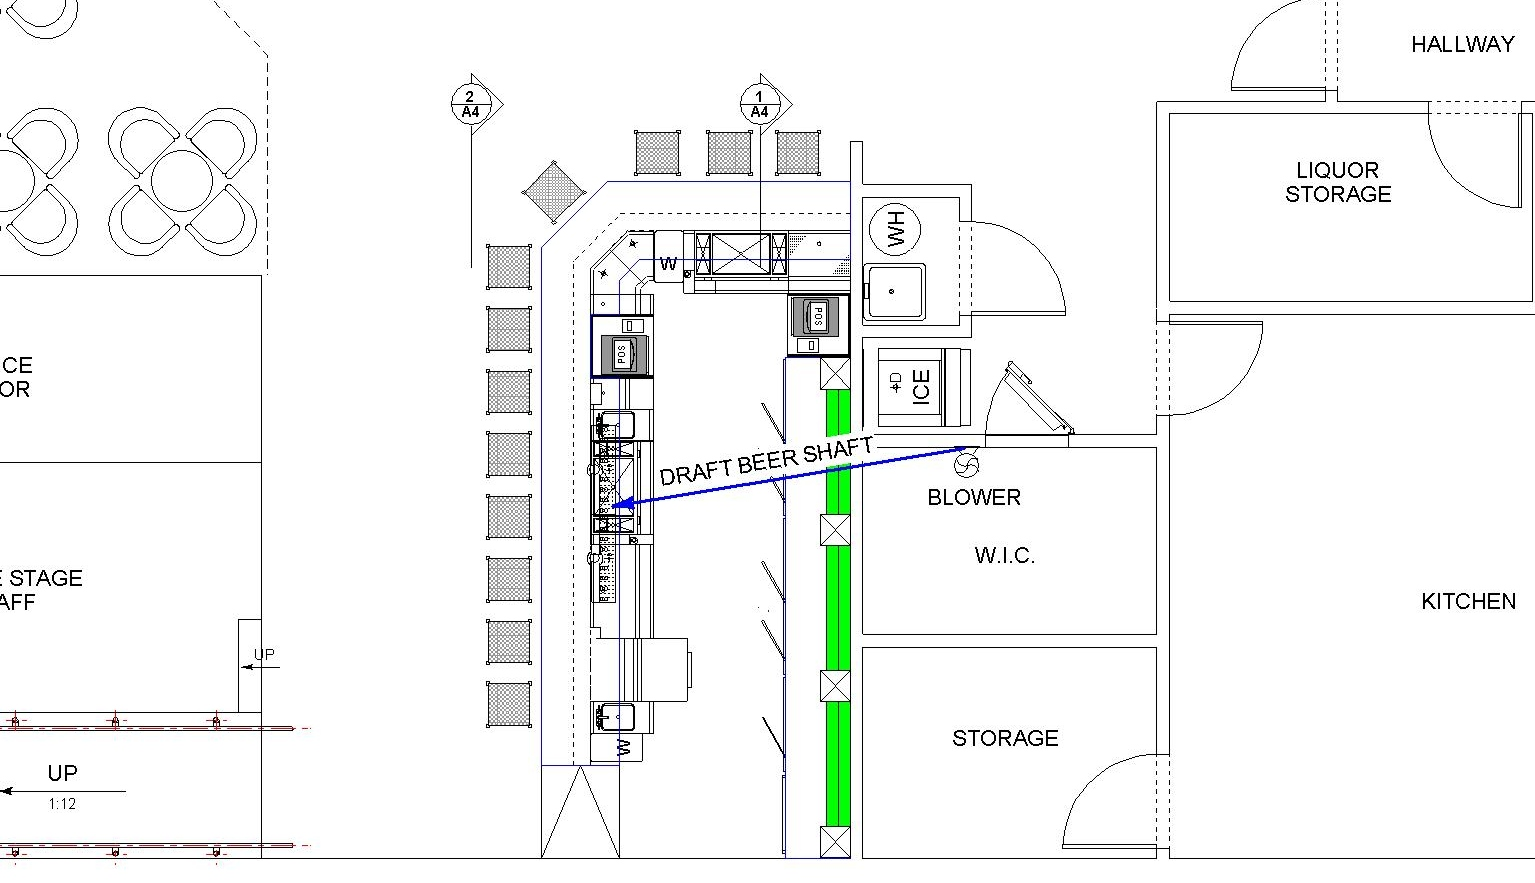 Architectural plan of air cooled draft system with nearby walk-in cooler